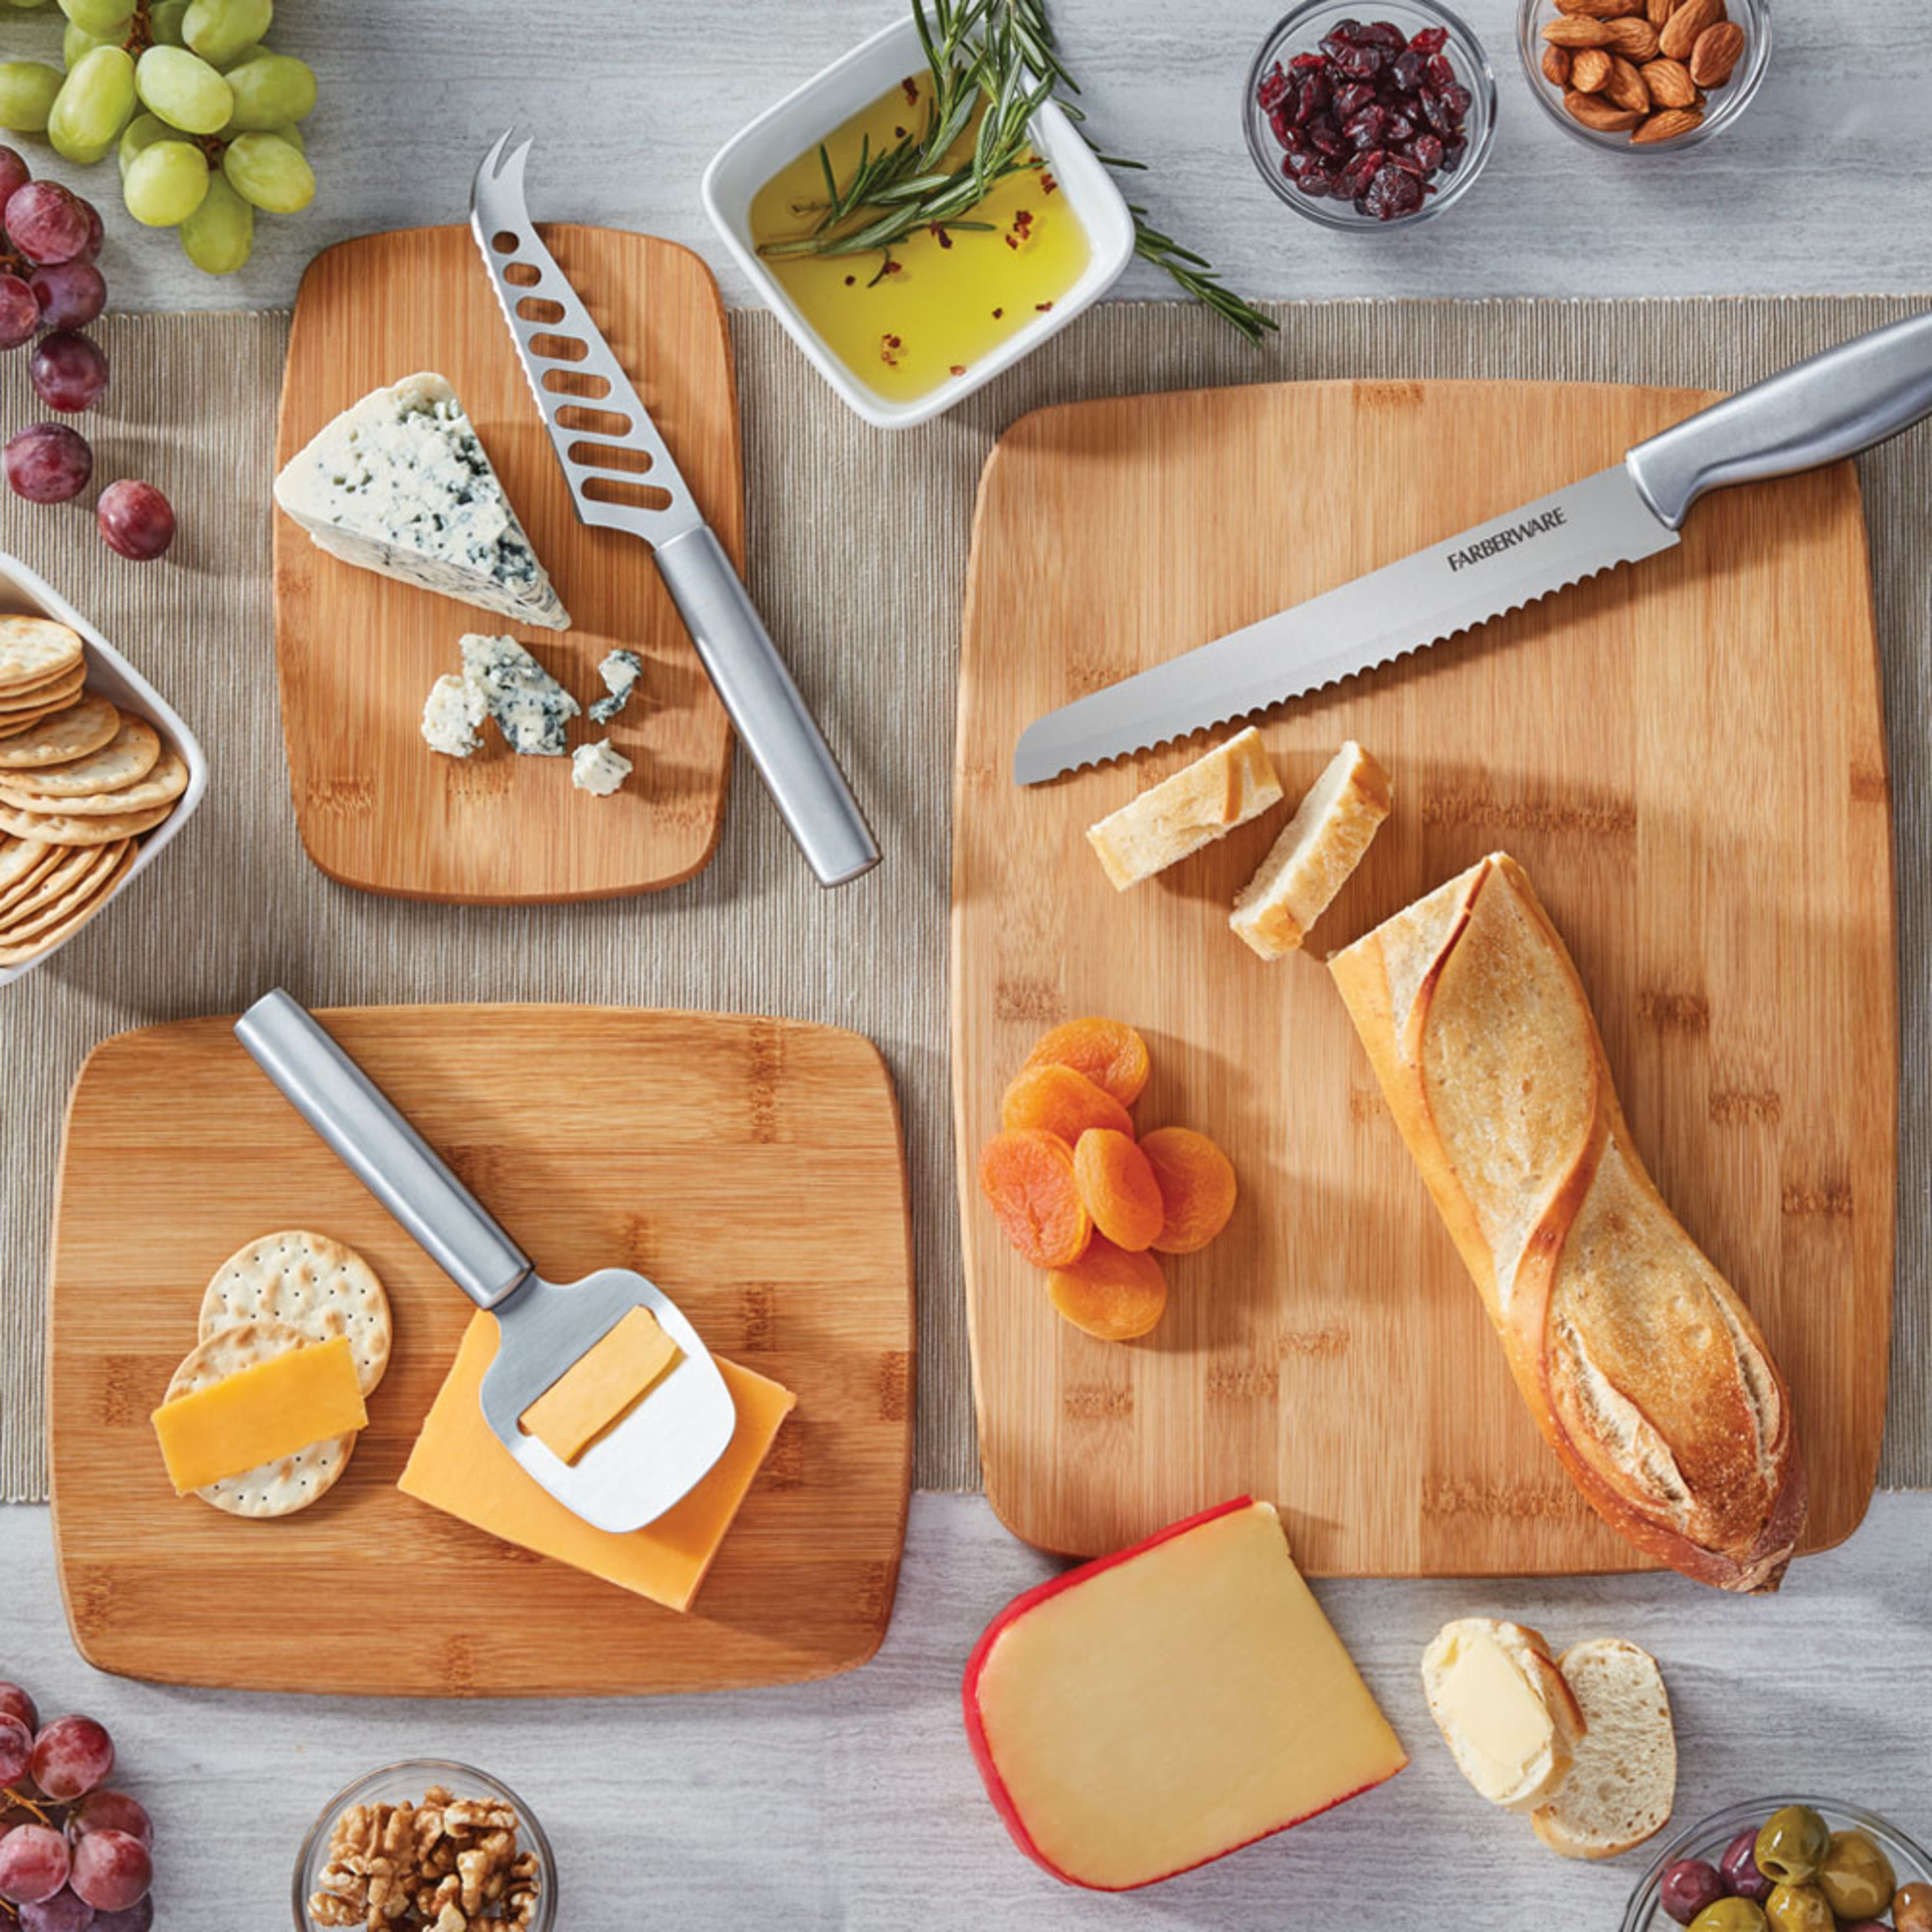 three bamboo cutting boards of various sizes with cheese, bread, and knives on top